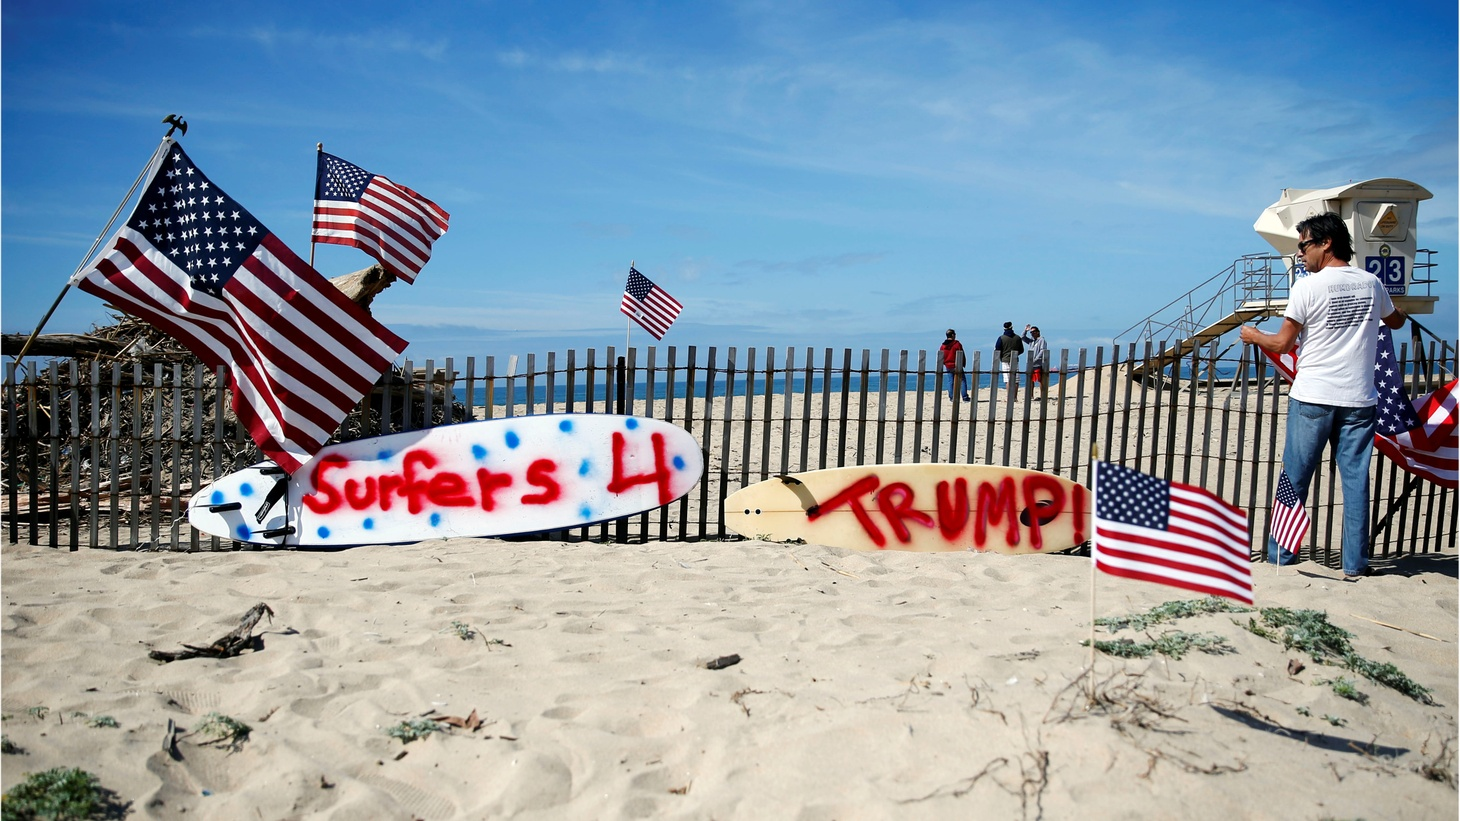 California served as an incubator for the hard-line conservative thinking that helped propel Donald Trump to the White House. It's an ideology birthed out of opposition to the liberal politics and multiculturalism that now dominate the state.